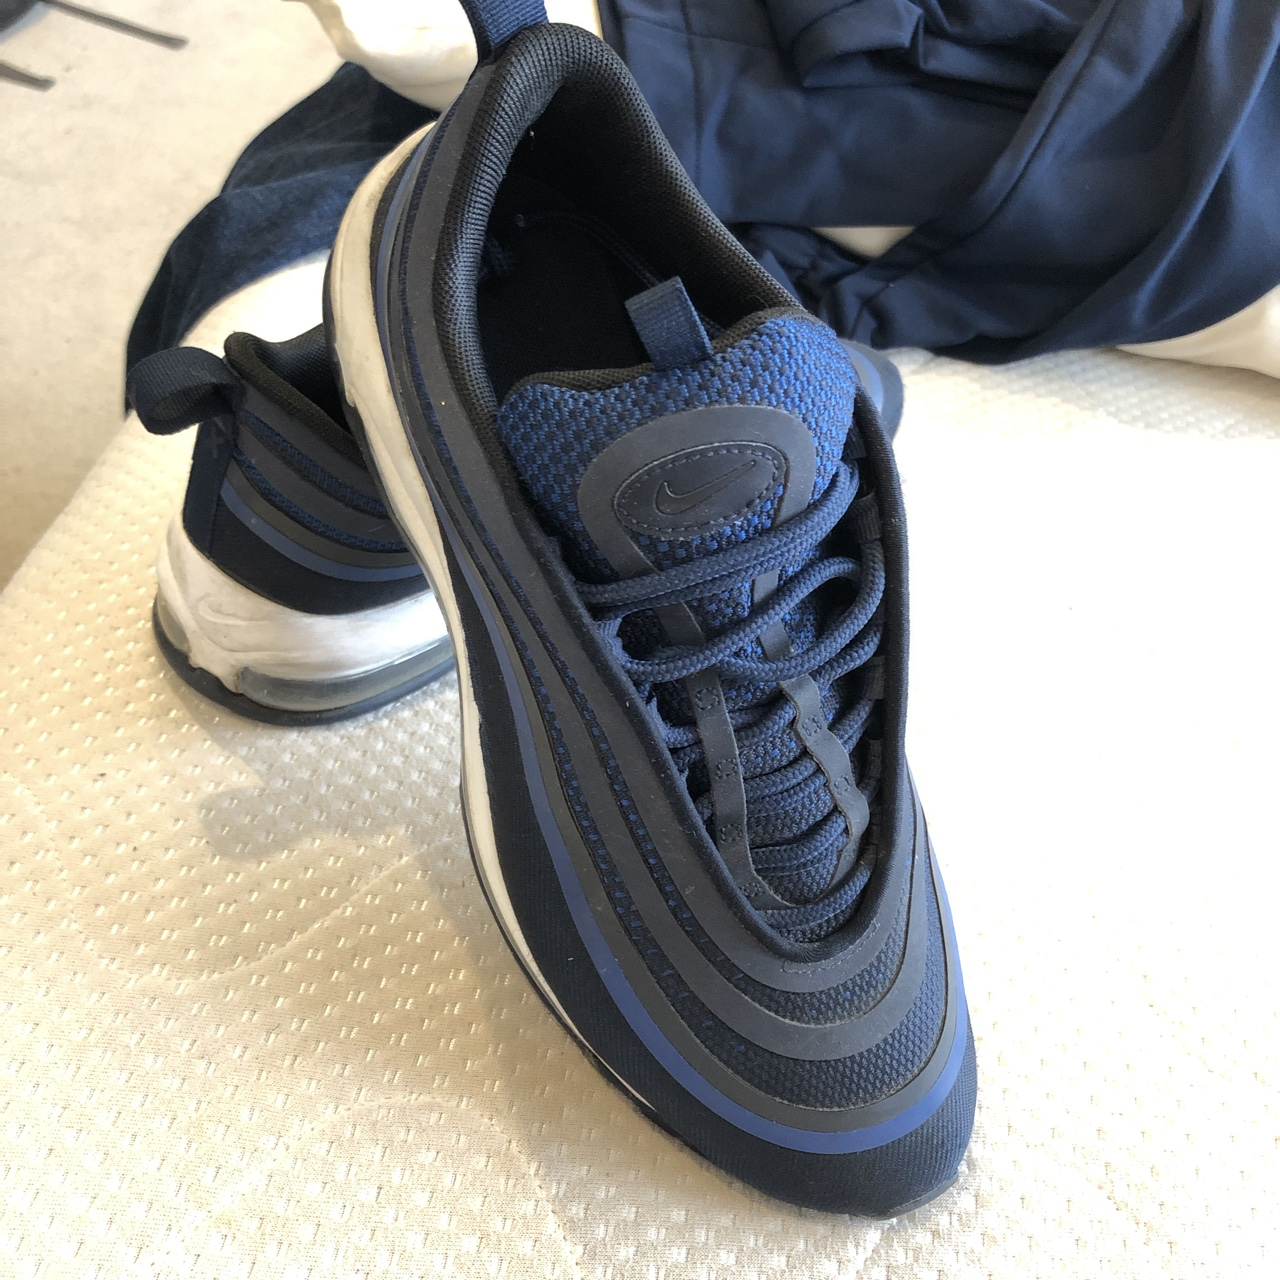 Navy blue nike air max 97's Size 7 Too